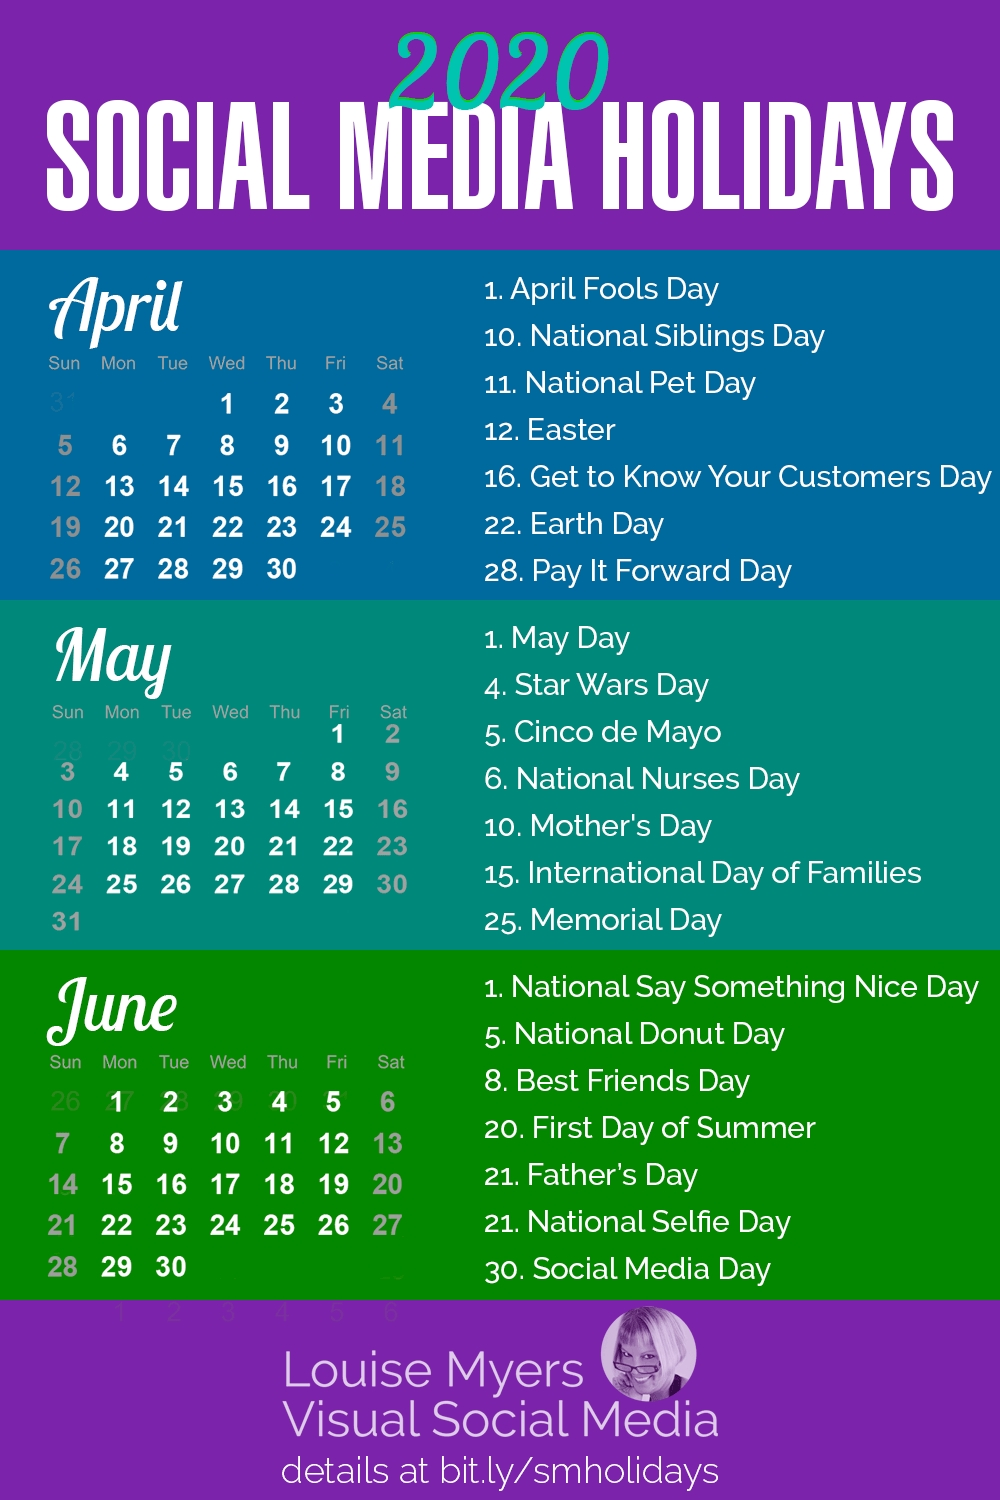 84 Social Media Holidays You Need In 2020: Indispensable! with regard to 2020 Calendar With Important Dates